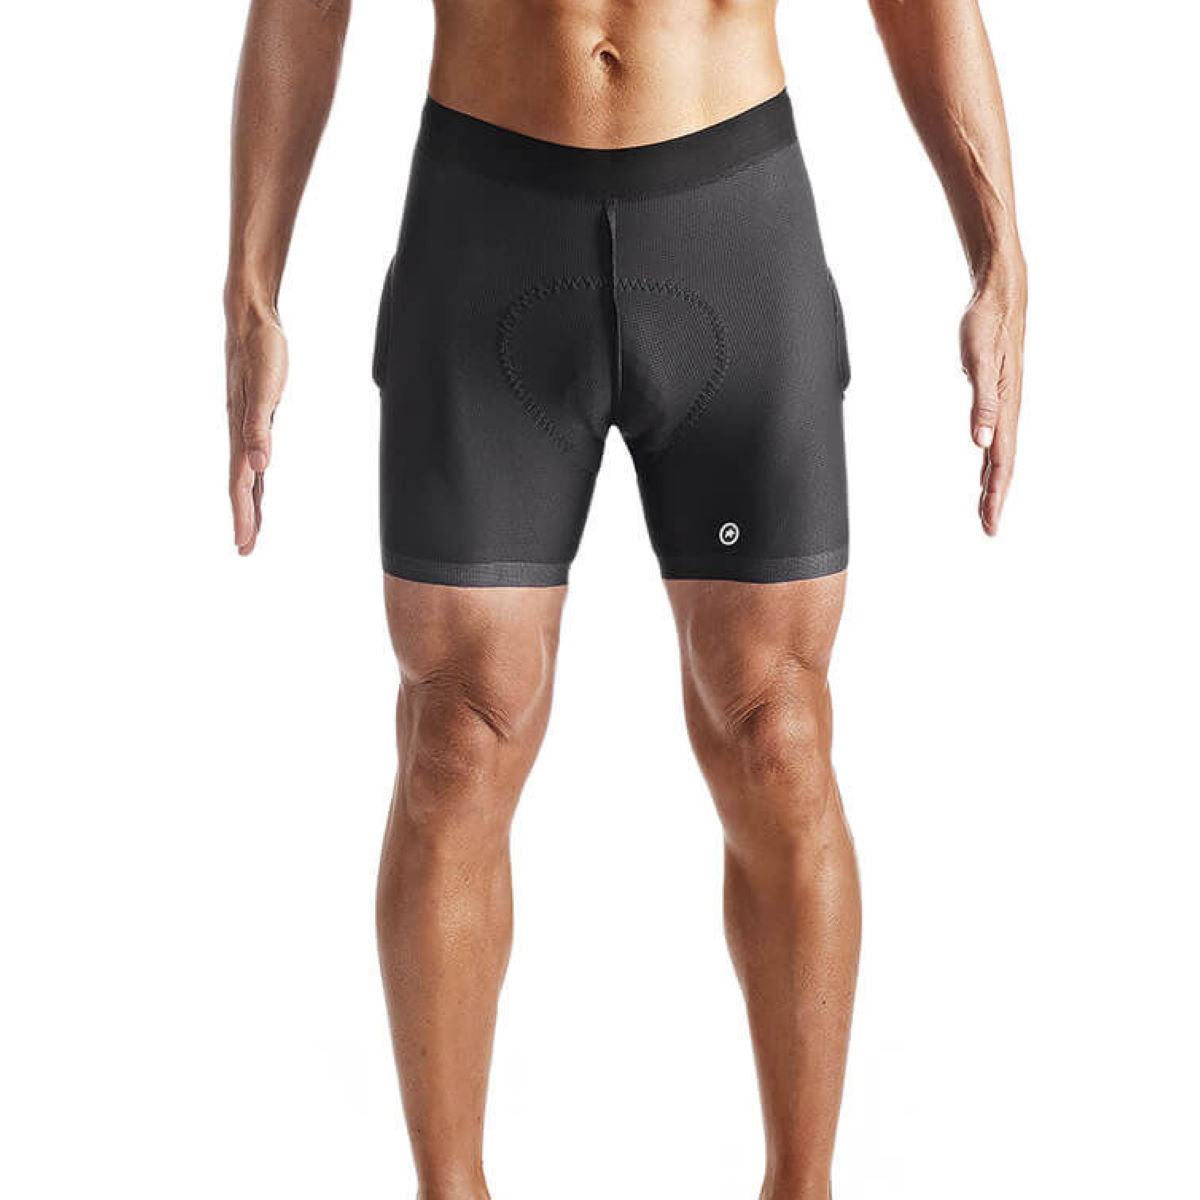 Assos H.rallyBoxer_s7 Under Shorts   Lycra Cycling Shorts